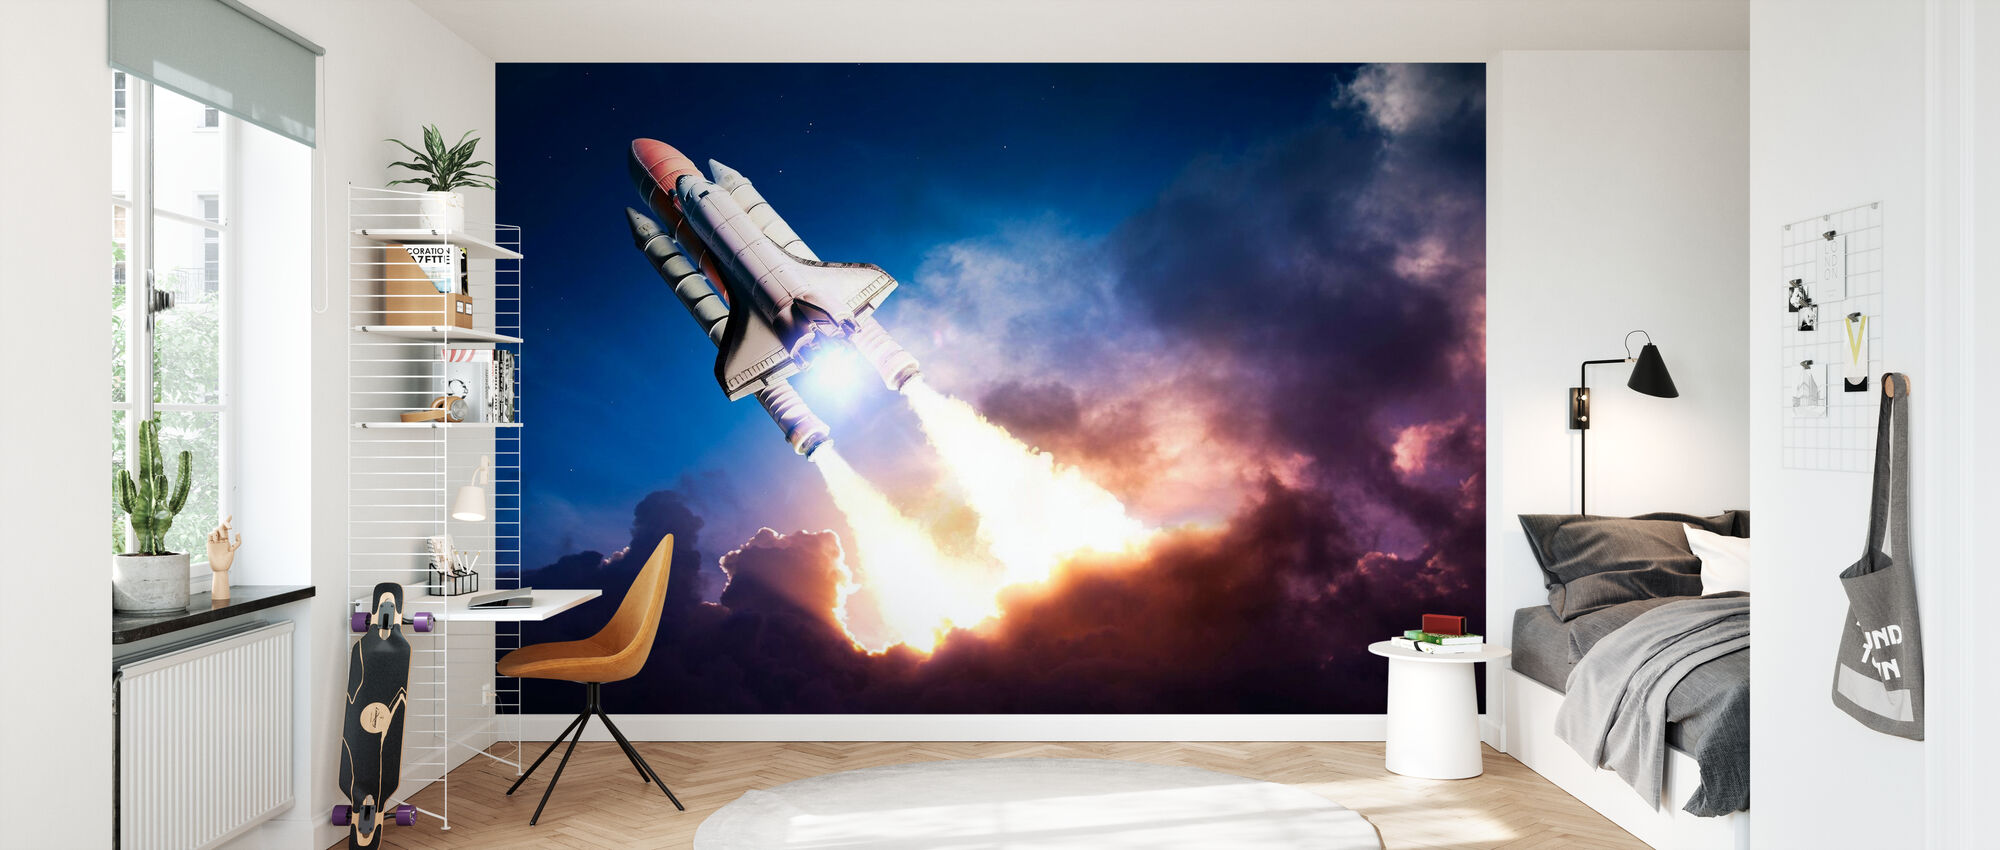 Outer space wallpaper mural for Teen Age Children's Bedroom